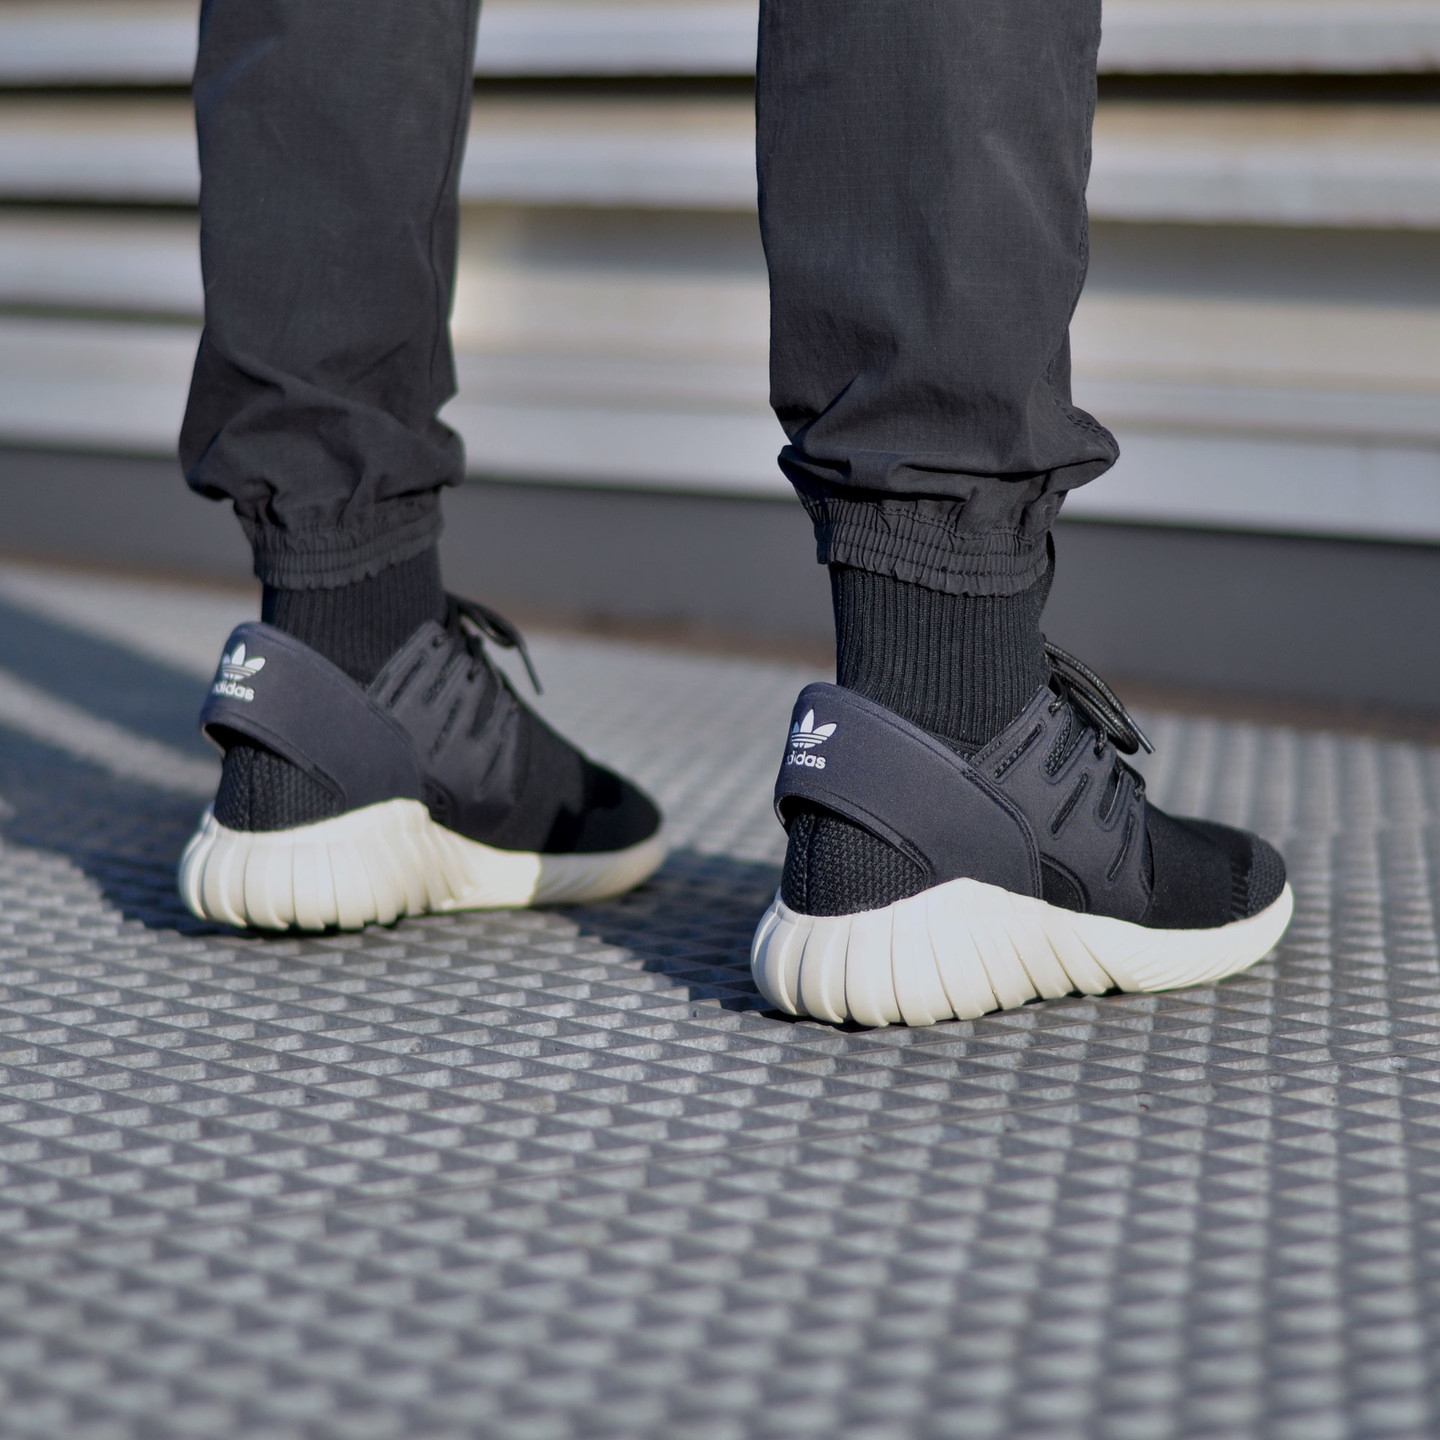 Adidas Tubular Doom Primeknit Black / Cream White S74921-43.33